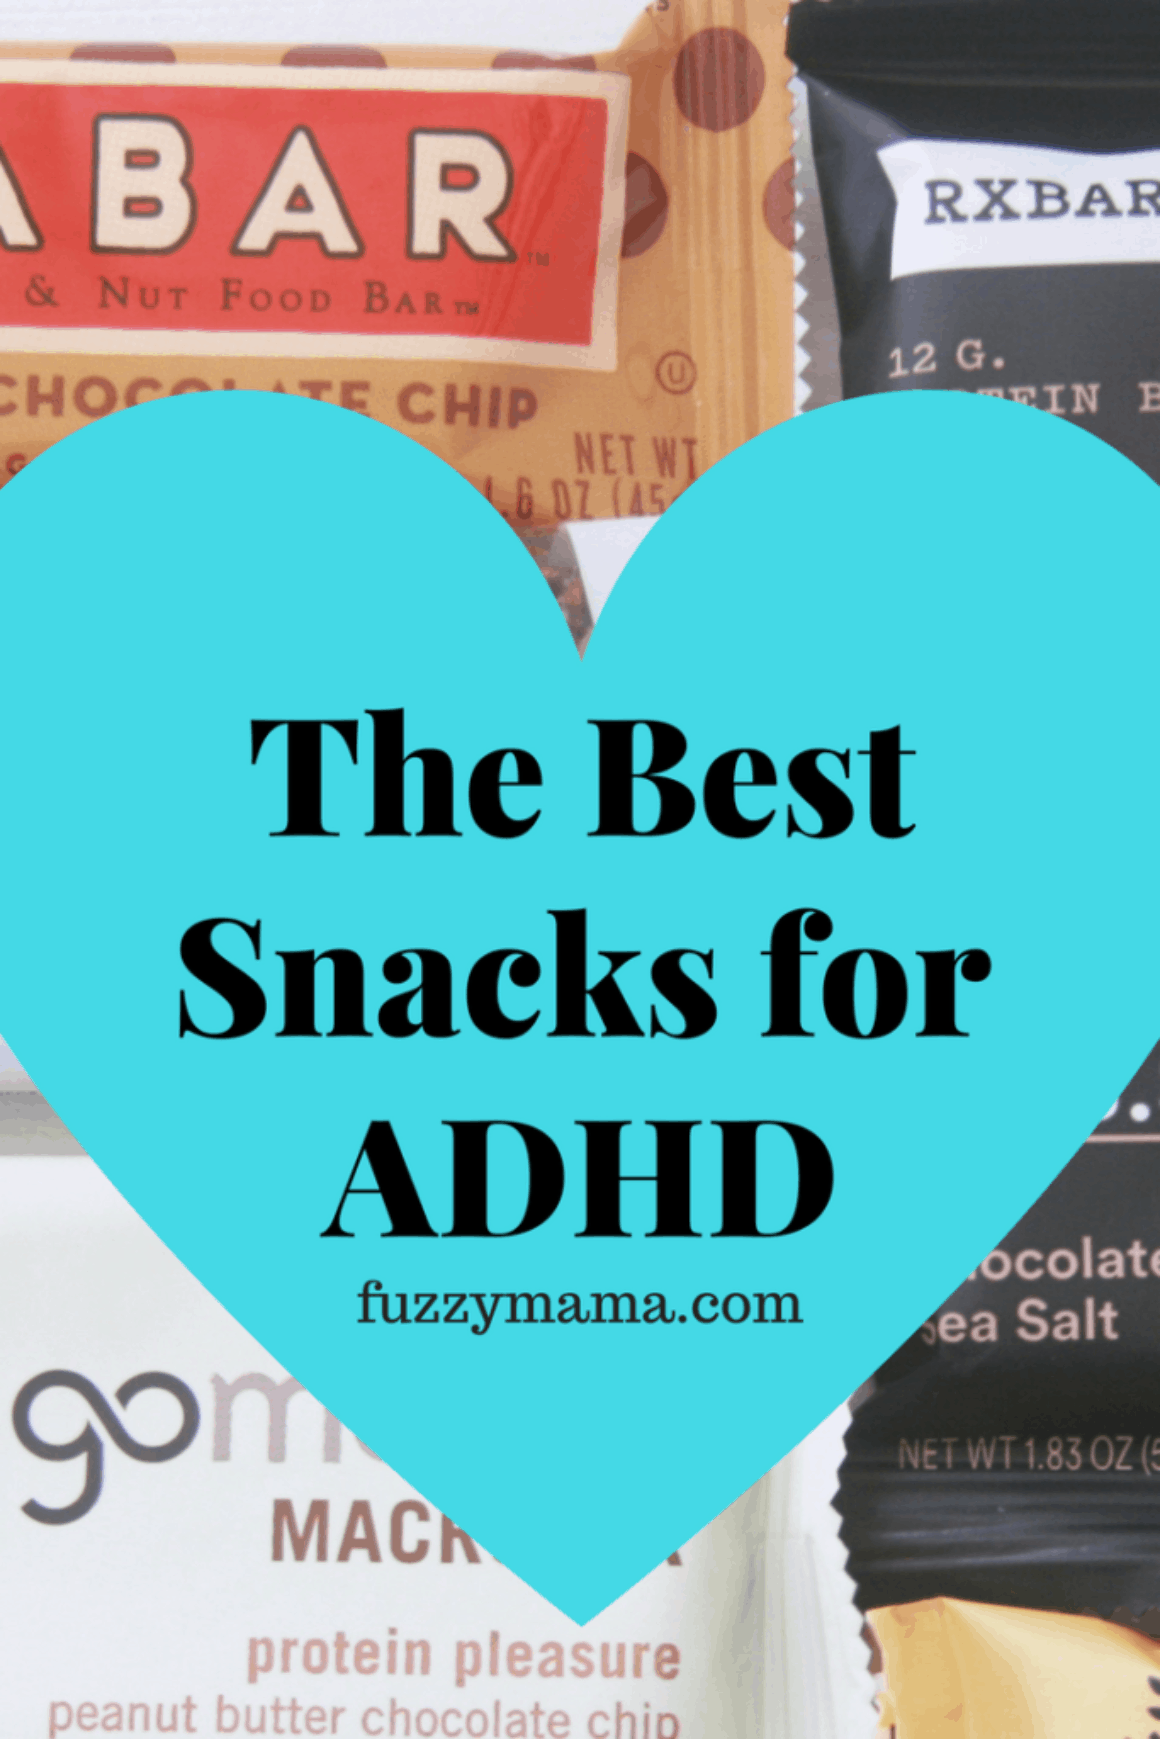 The Best Snacks for ADHD